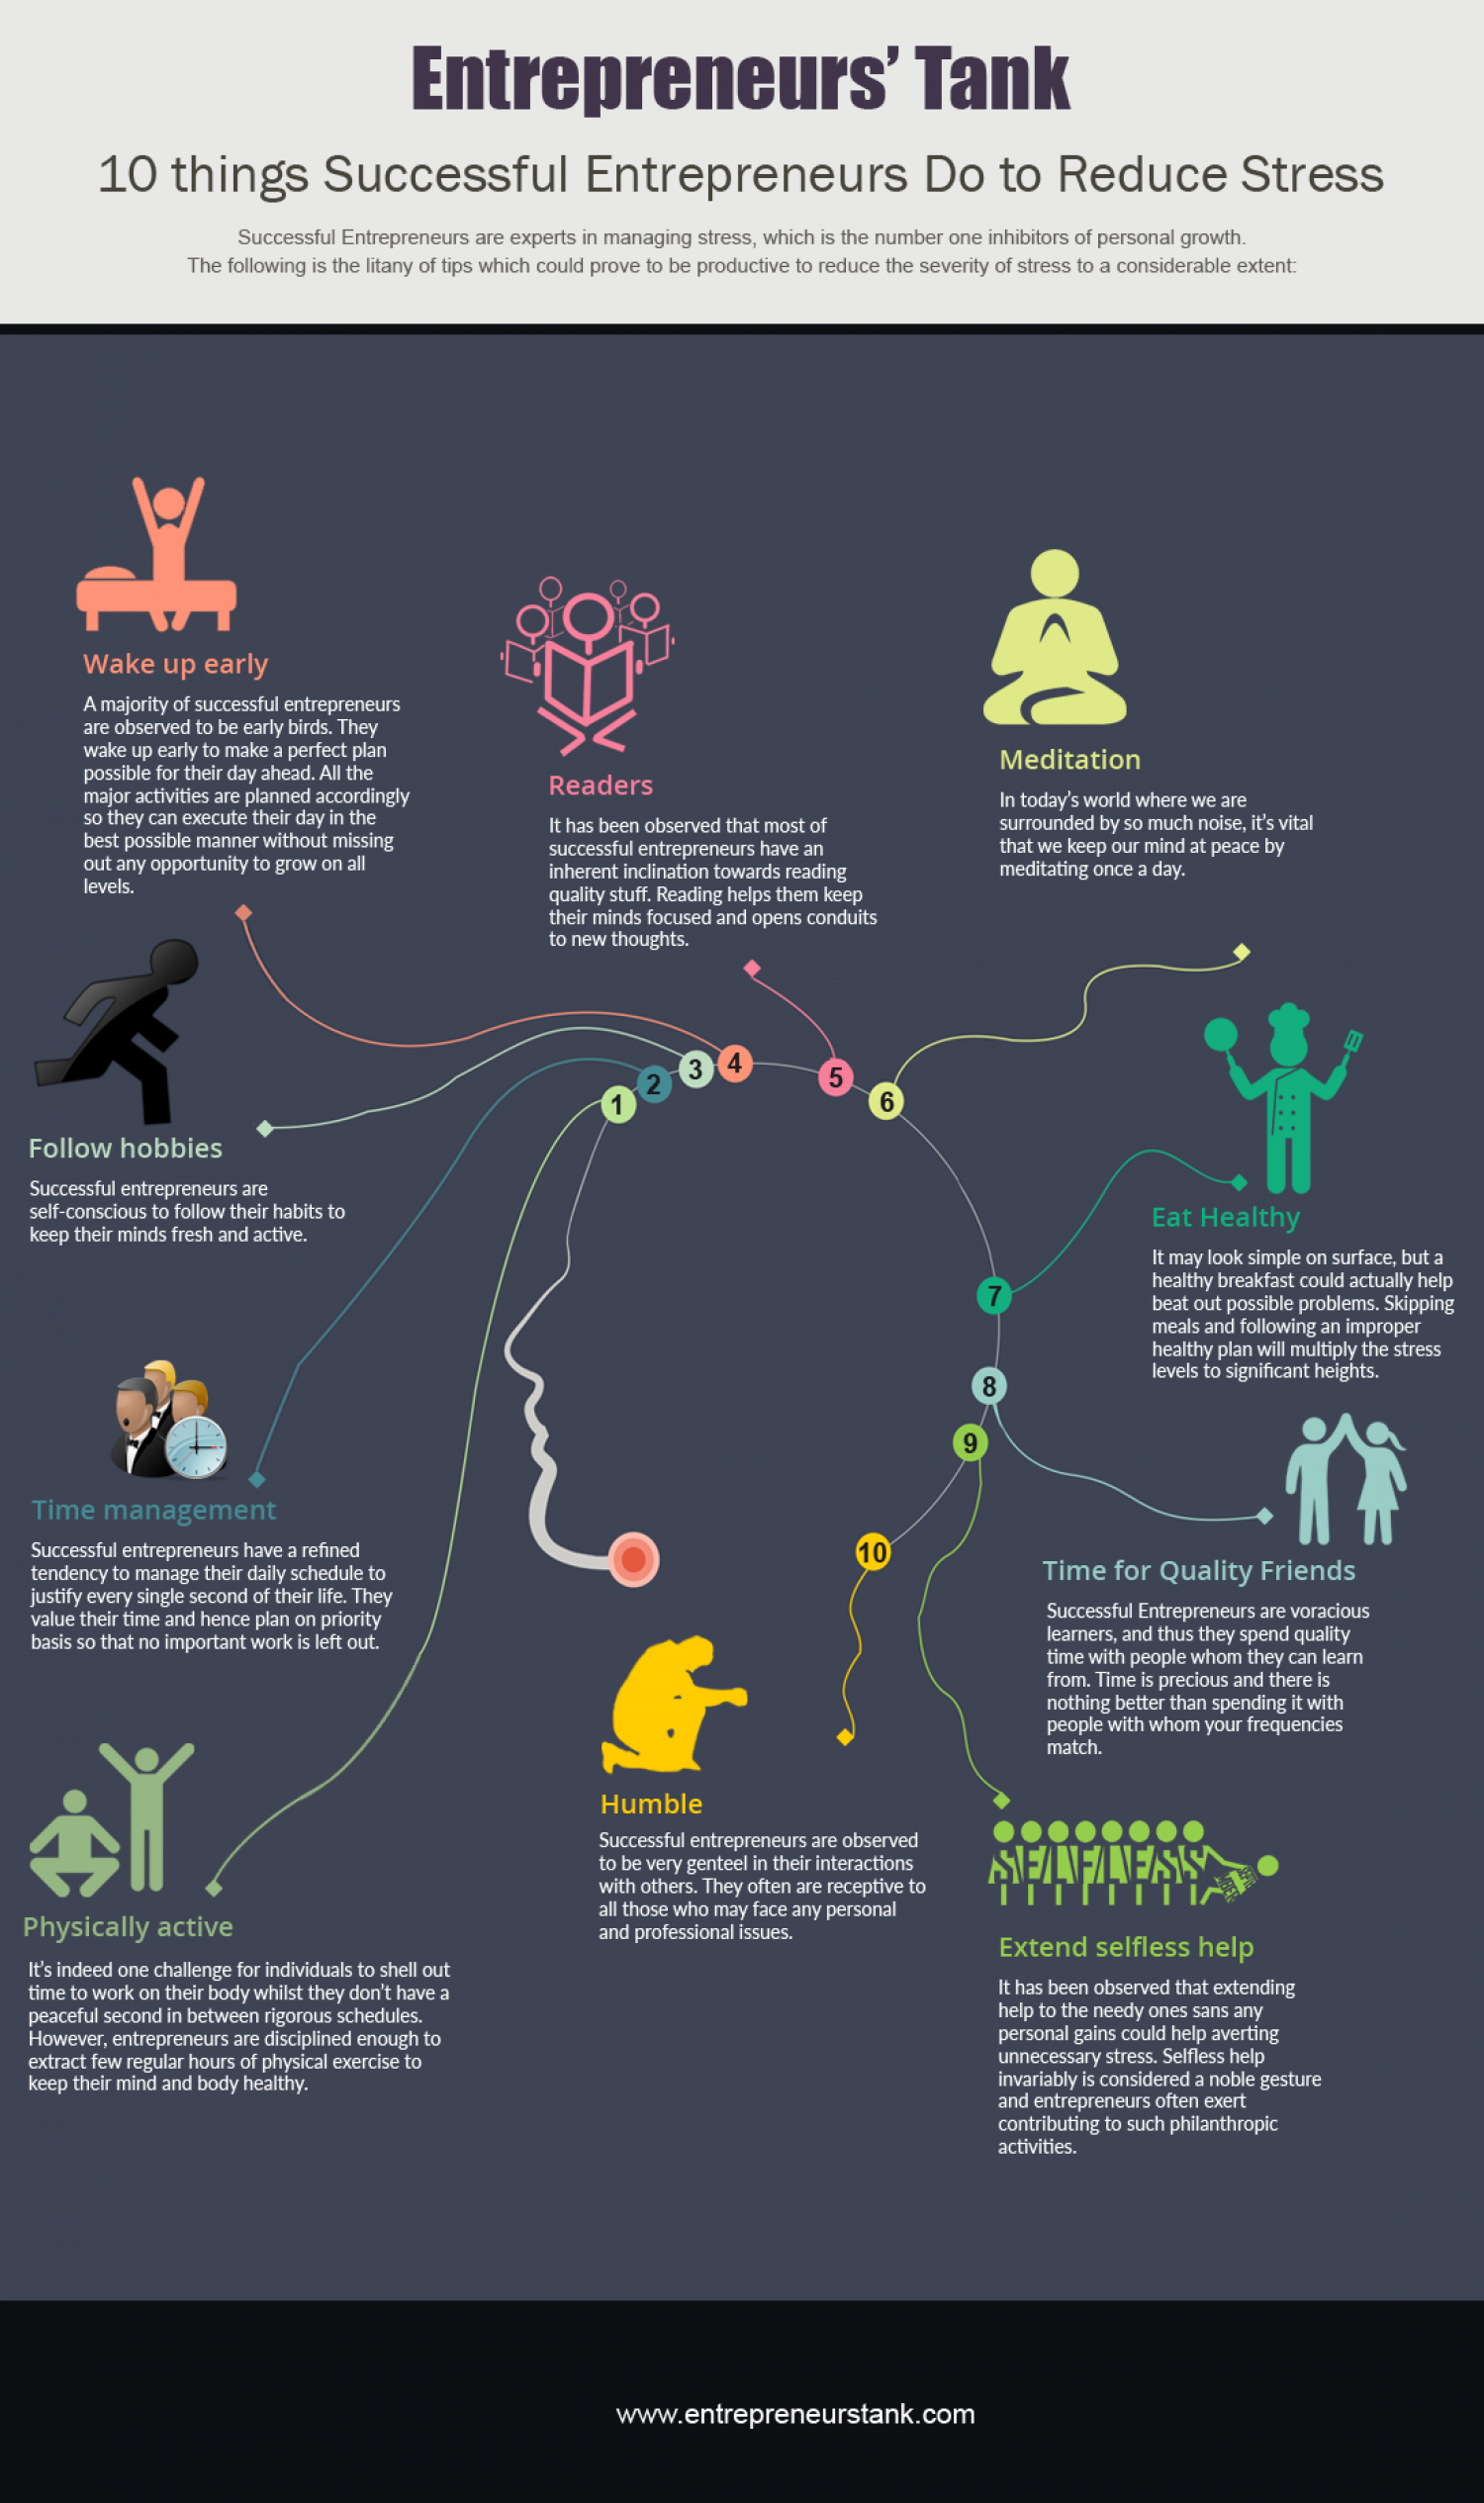 10 things Successful Entrepreneurs Do to Reduce Stress Infographic